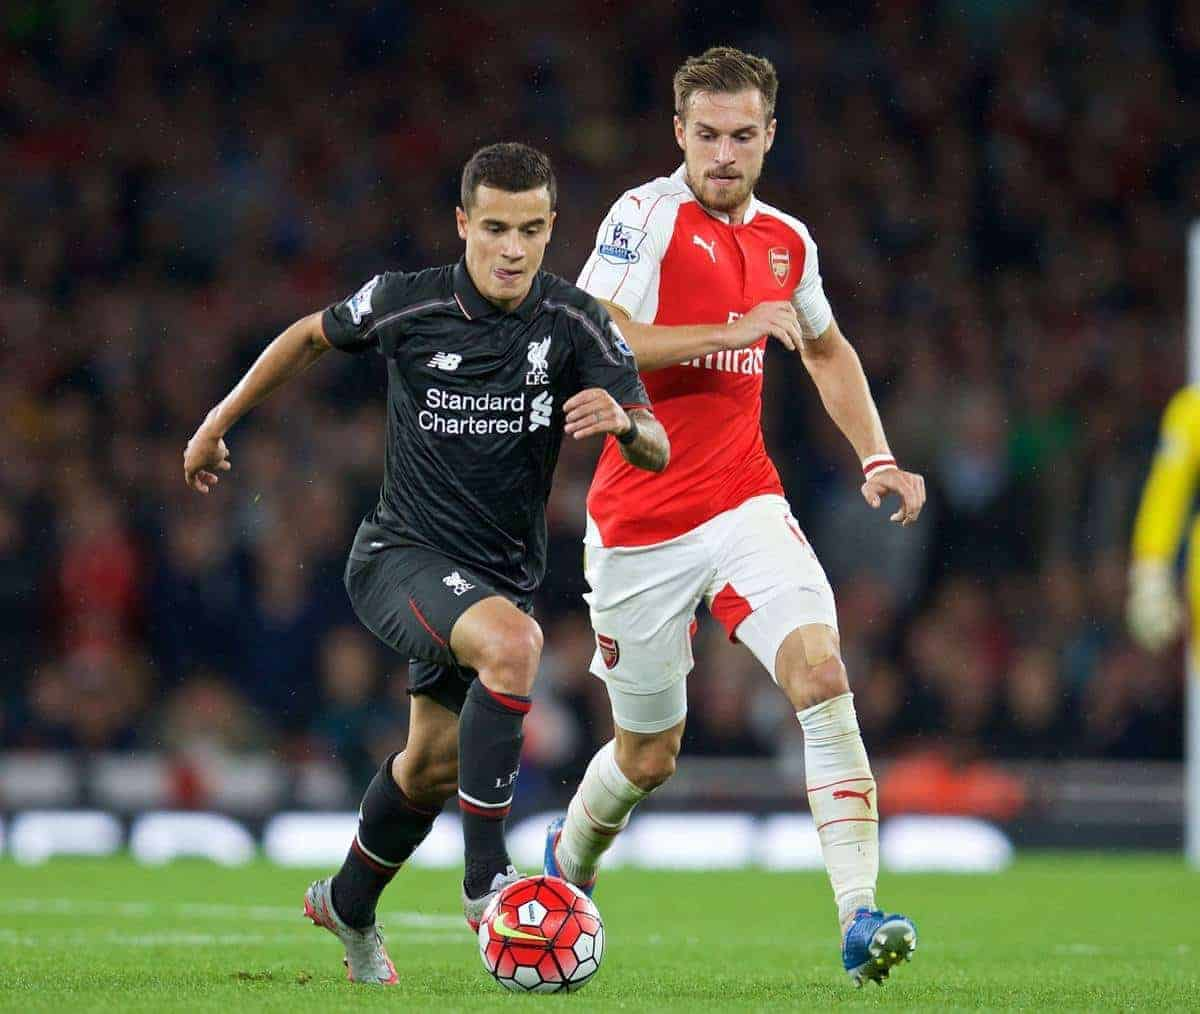 LONDON, ENGLAND - Monday, August 24, 2015: Liverpool's Philippe Coutinho Correia in action against Arsenal's Aaron Ramsey during the Premier League match at the Emirates Stadium. (Pic by David Rawcliffe/Propaganda)